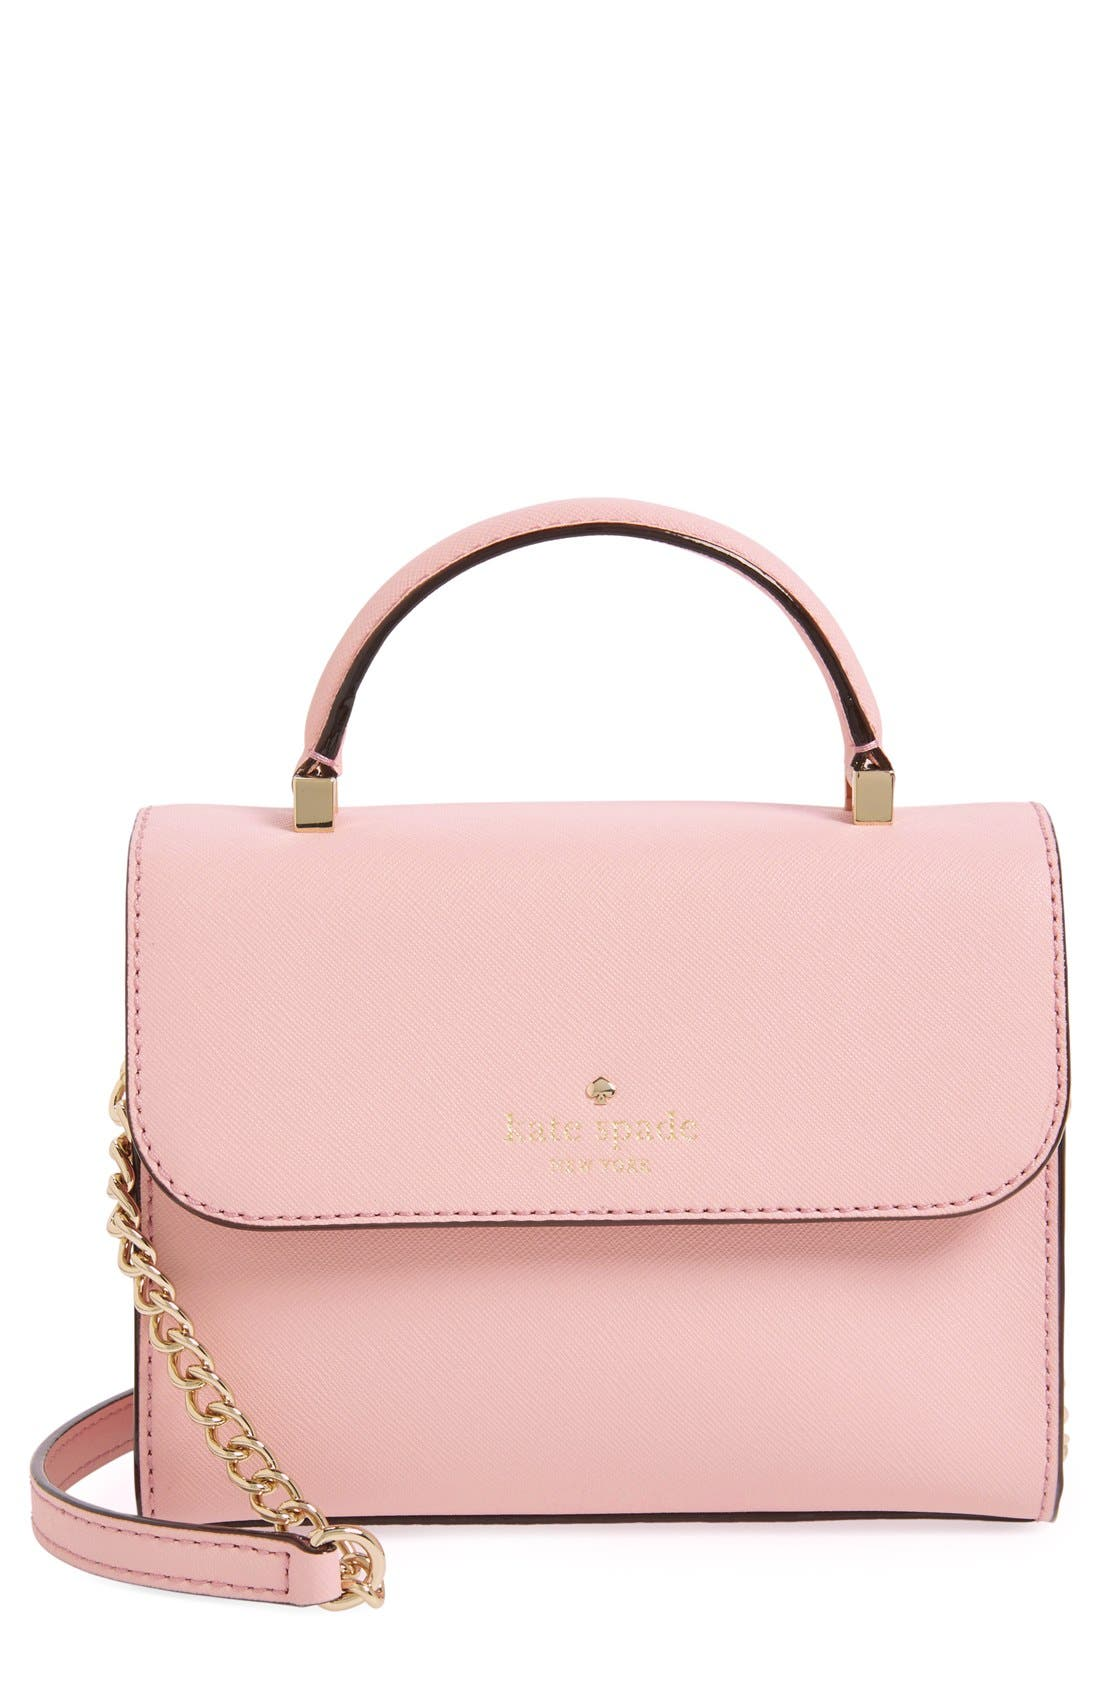 Alternate Image 1 Selected - kate spade new york 'cedar street - mini nora' crossbody bag